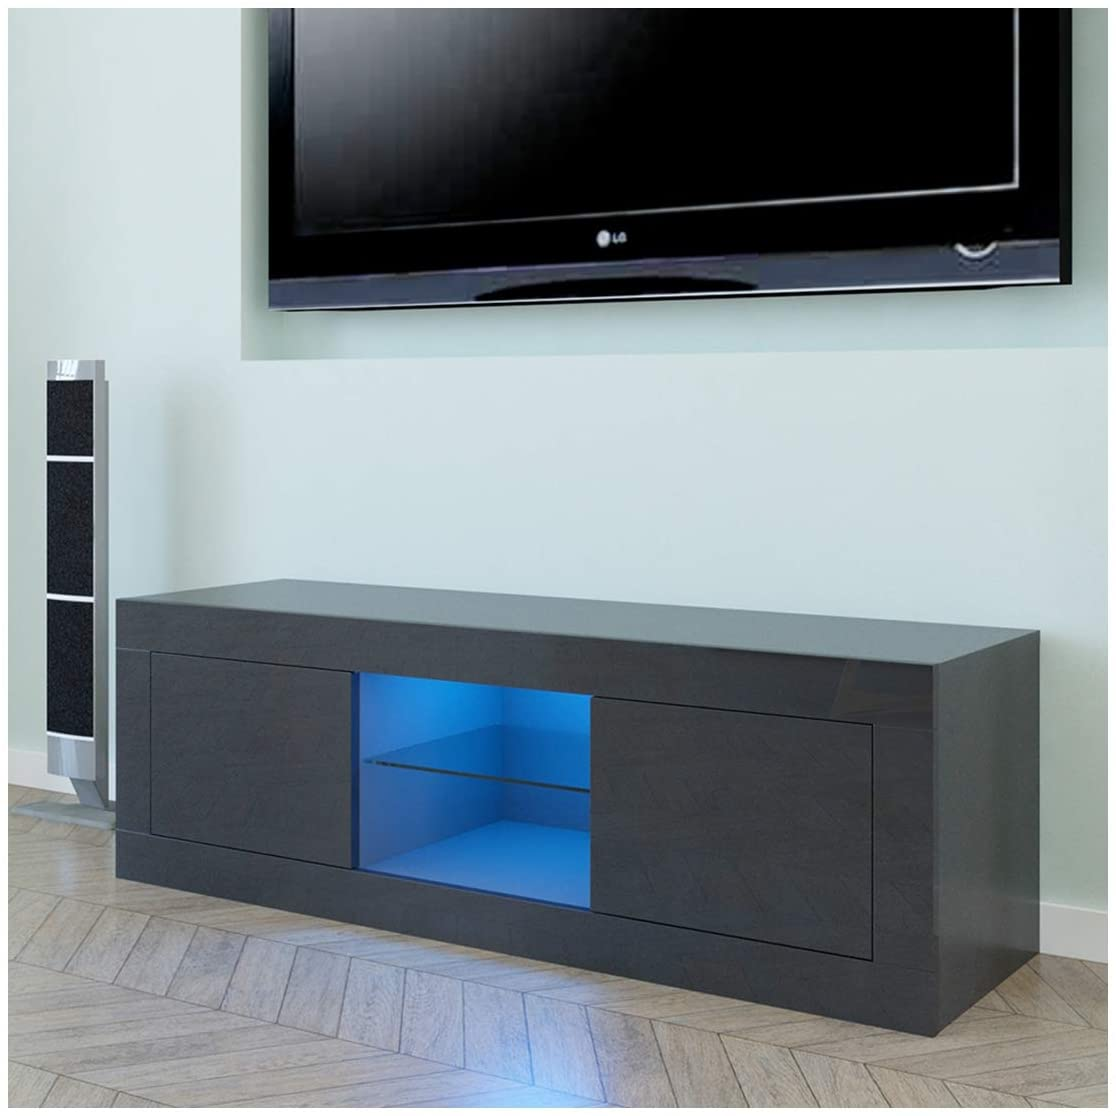 Household Decoration LED TV Cabinet, Elegant TV Stand with Two Doors, Black